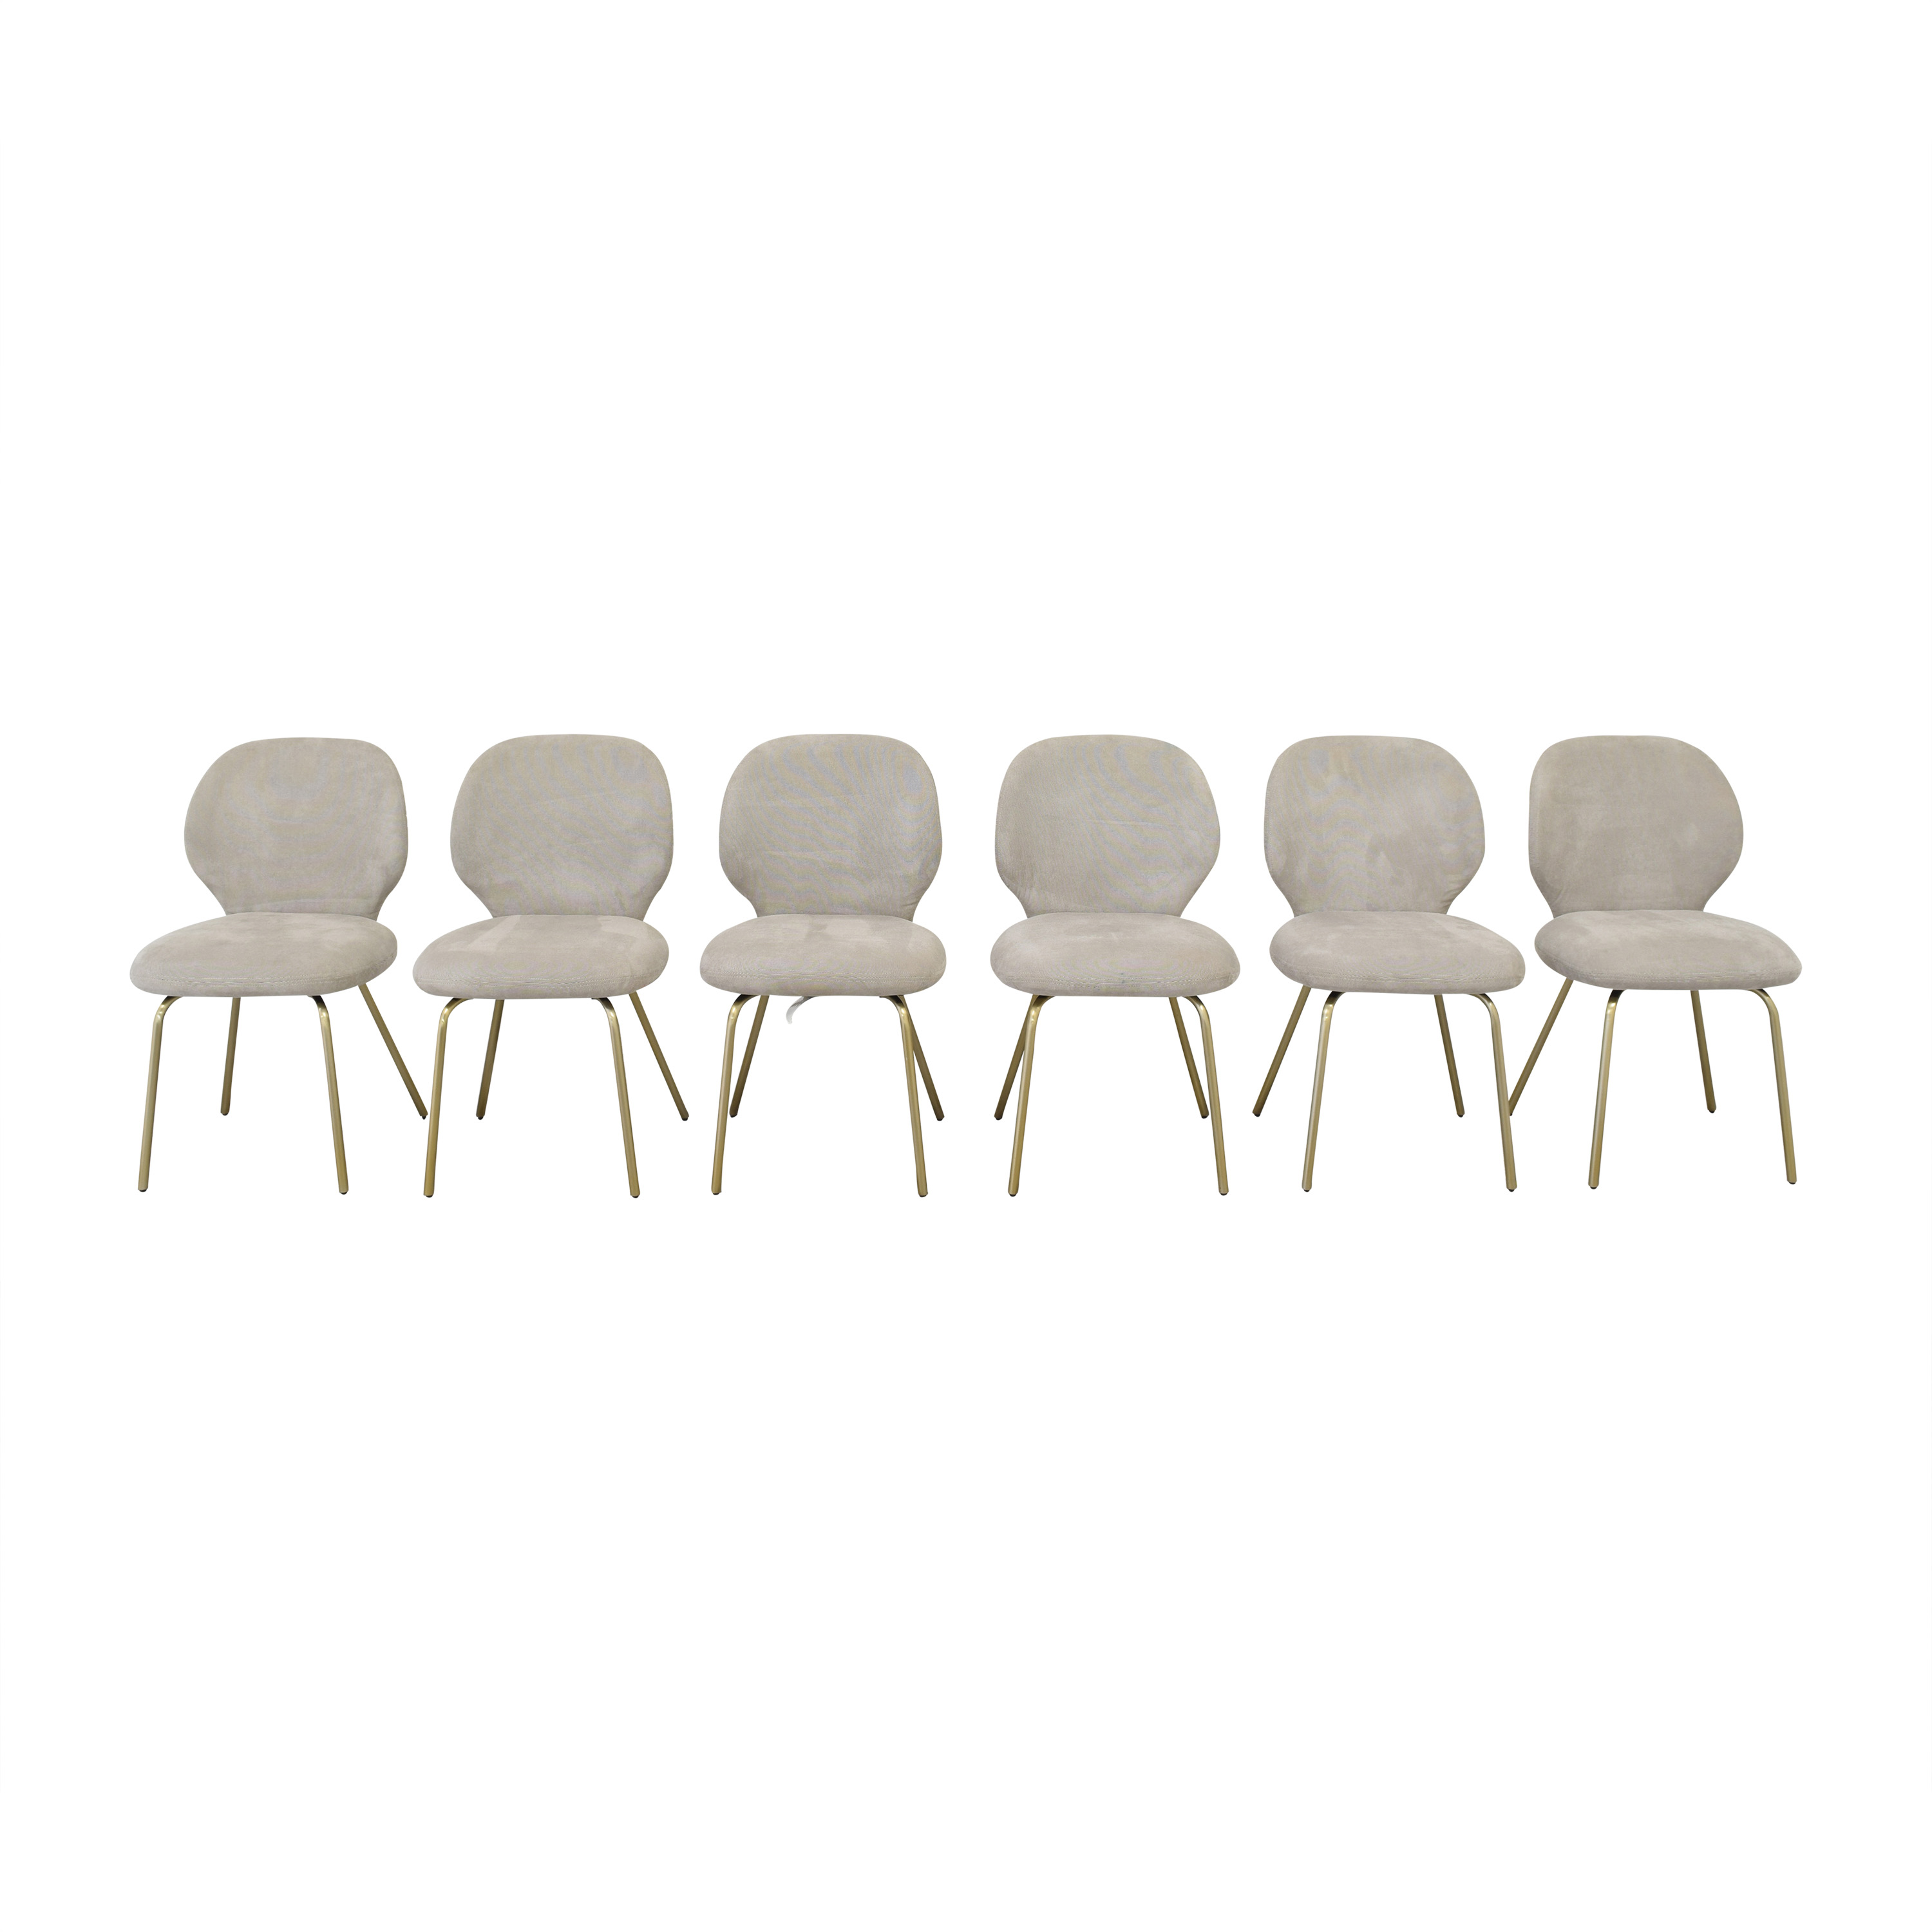 Interior Define Interior Define Upholstered Dining Chairs ct